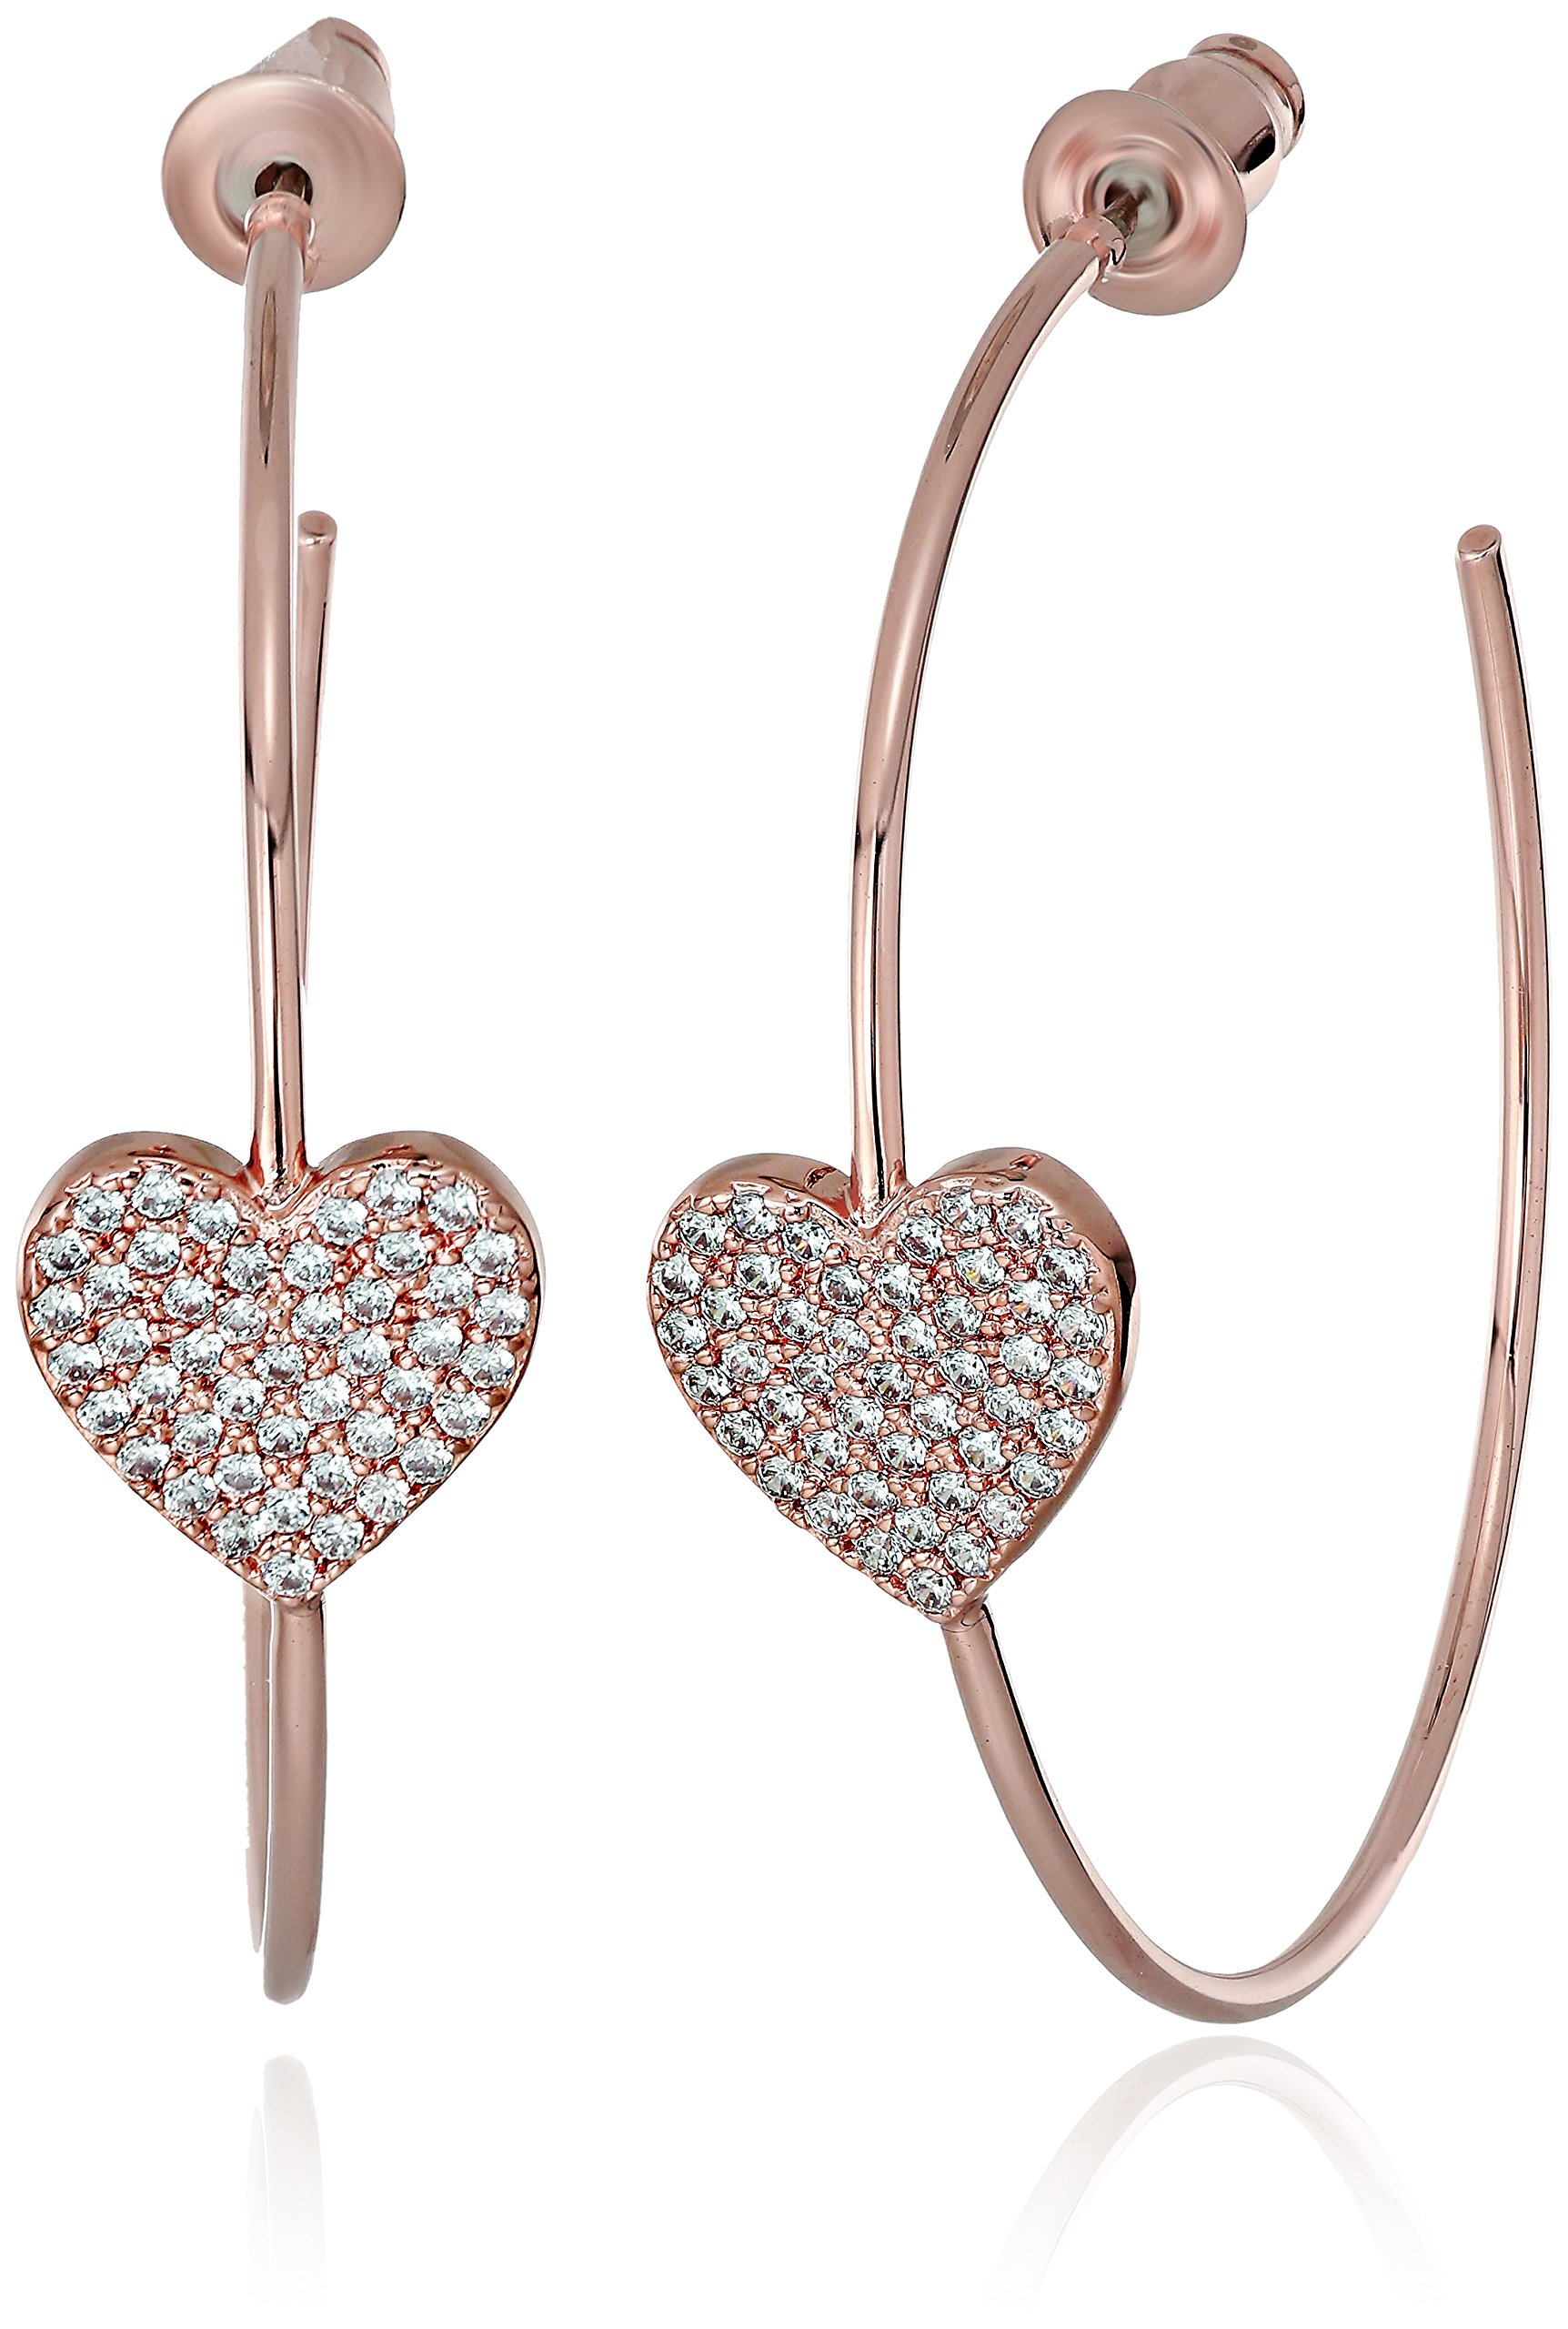 kate spade new york Womens Pave Heart Hoop Earrings, Clear/Rose Gold